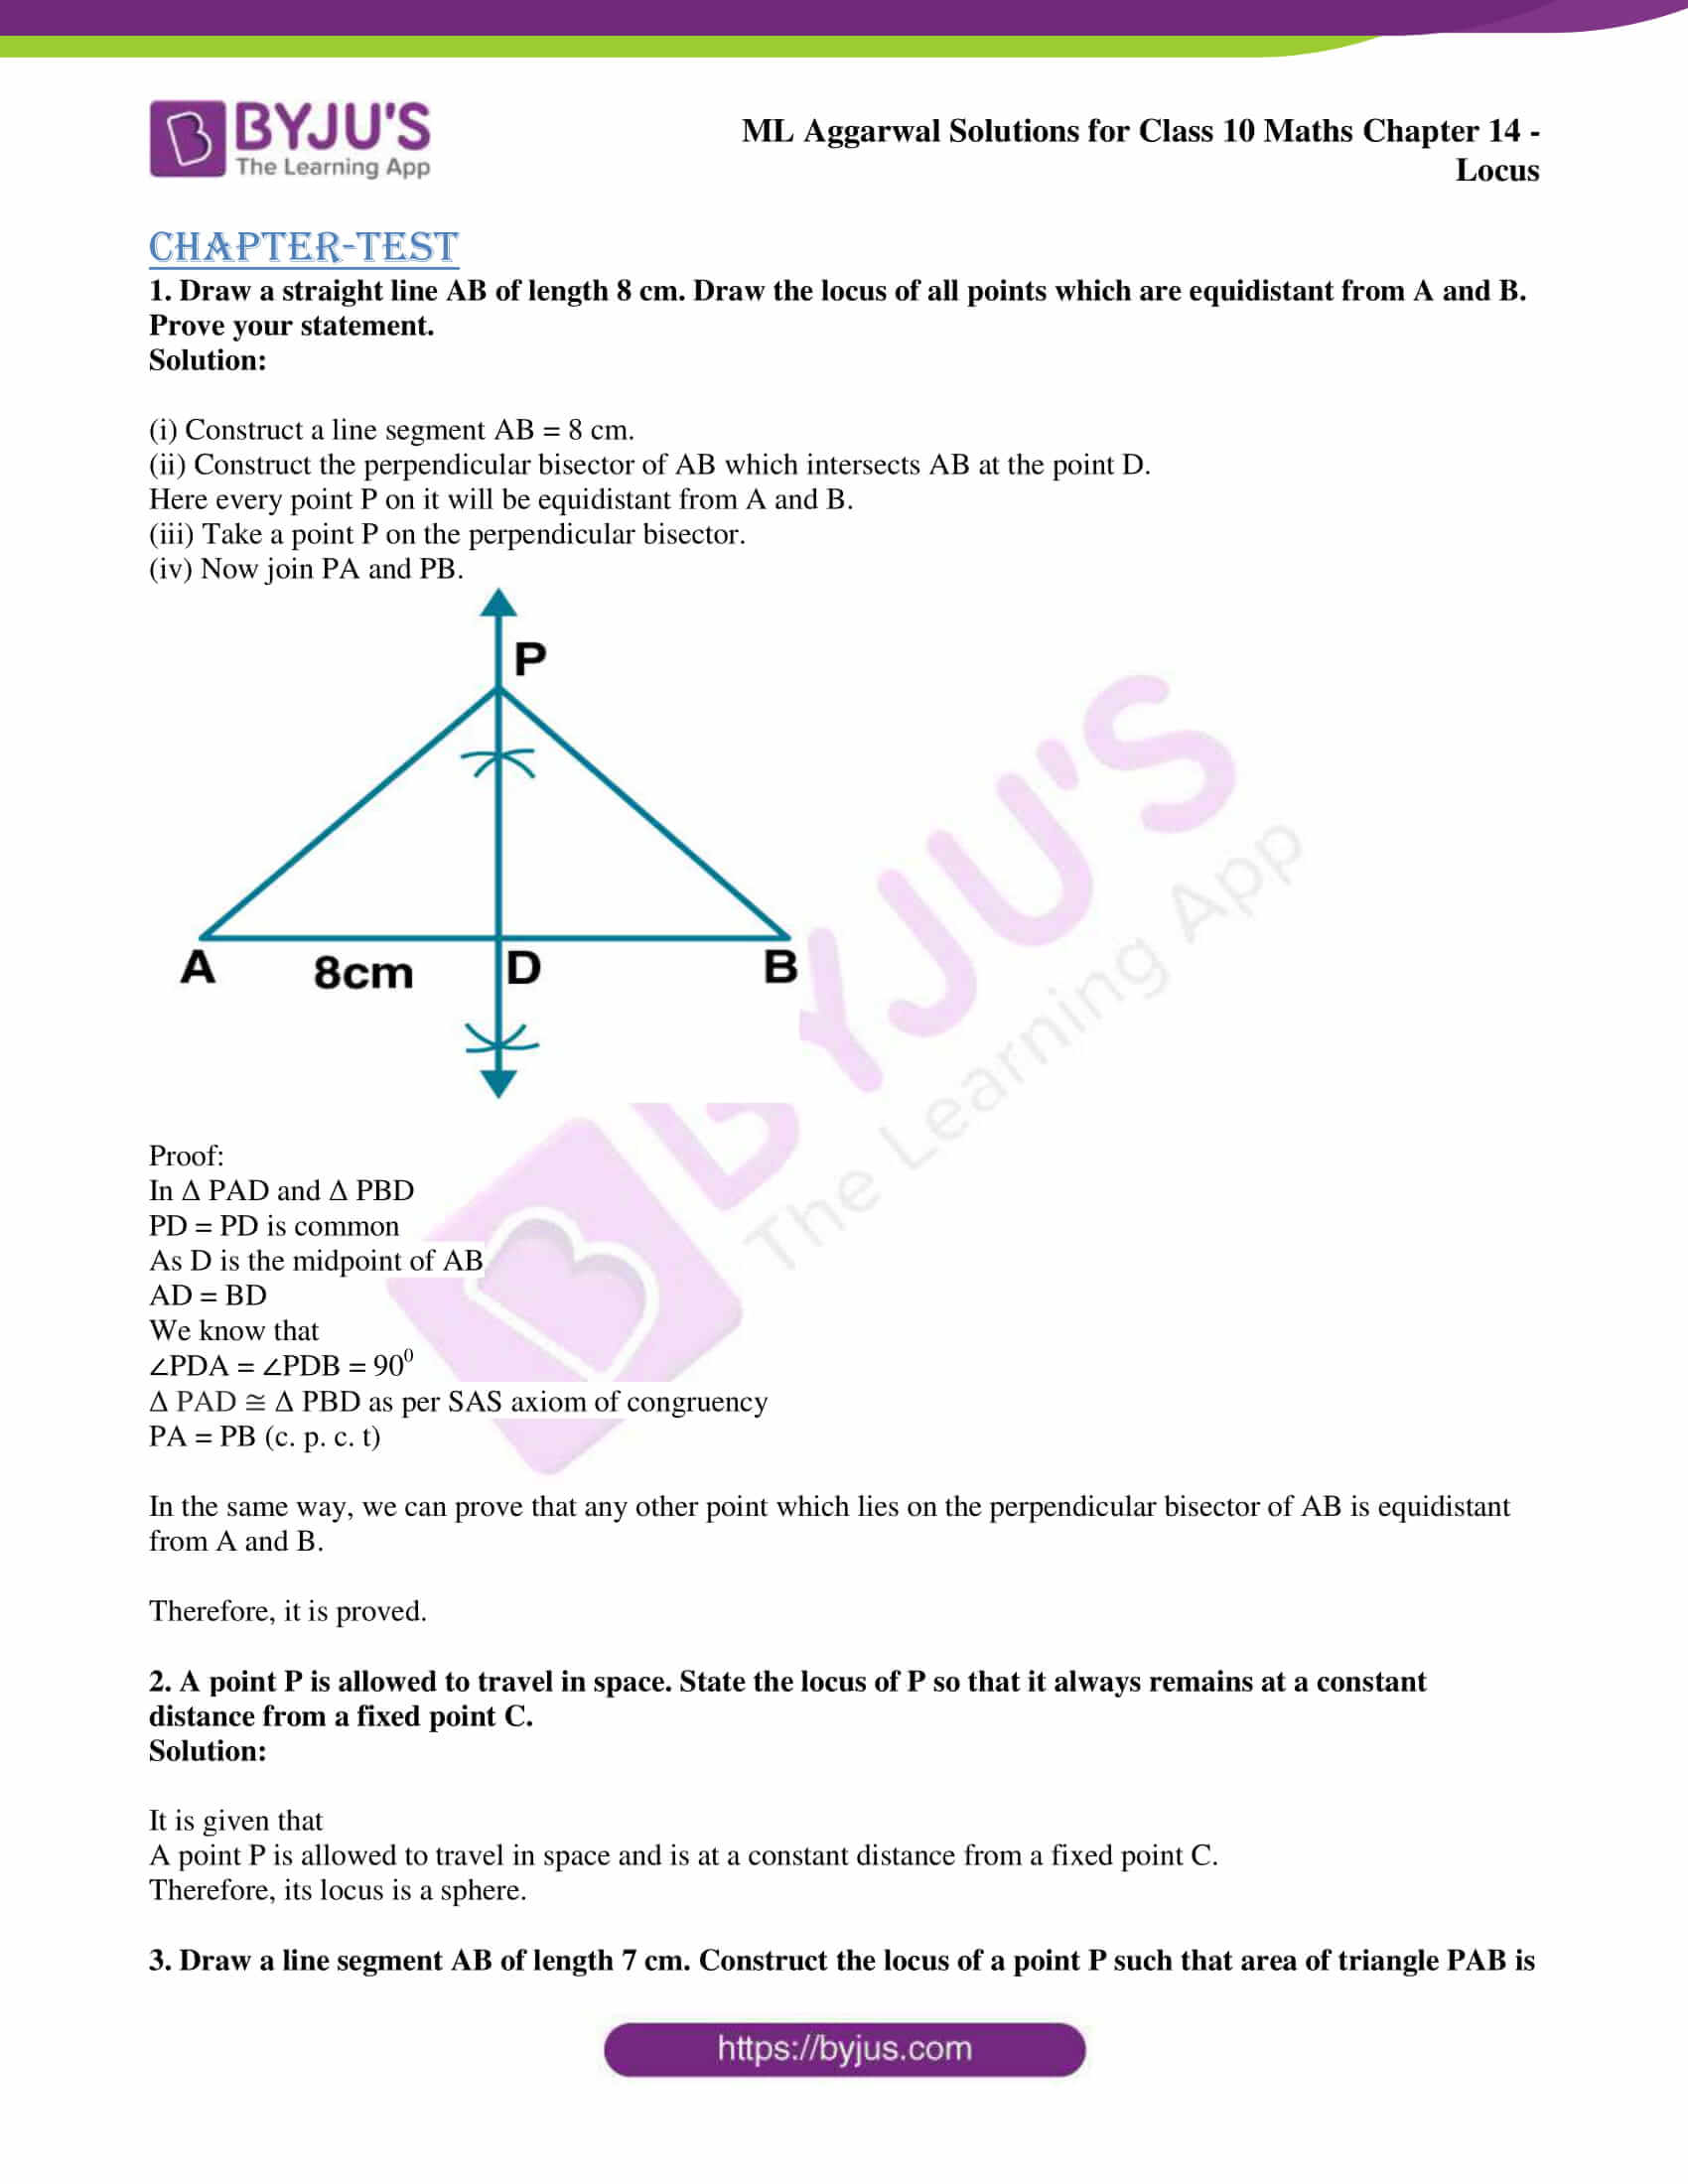 ml aggarwal solutions for class 10 maths chapter 14 19